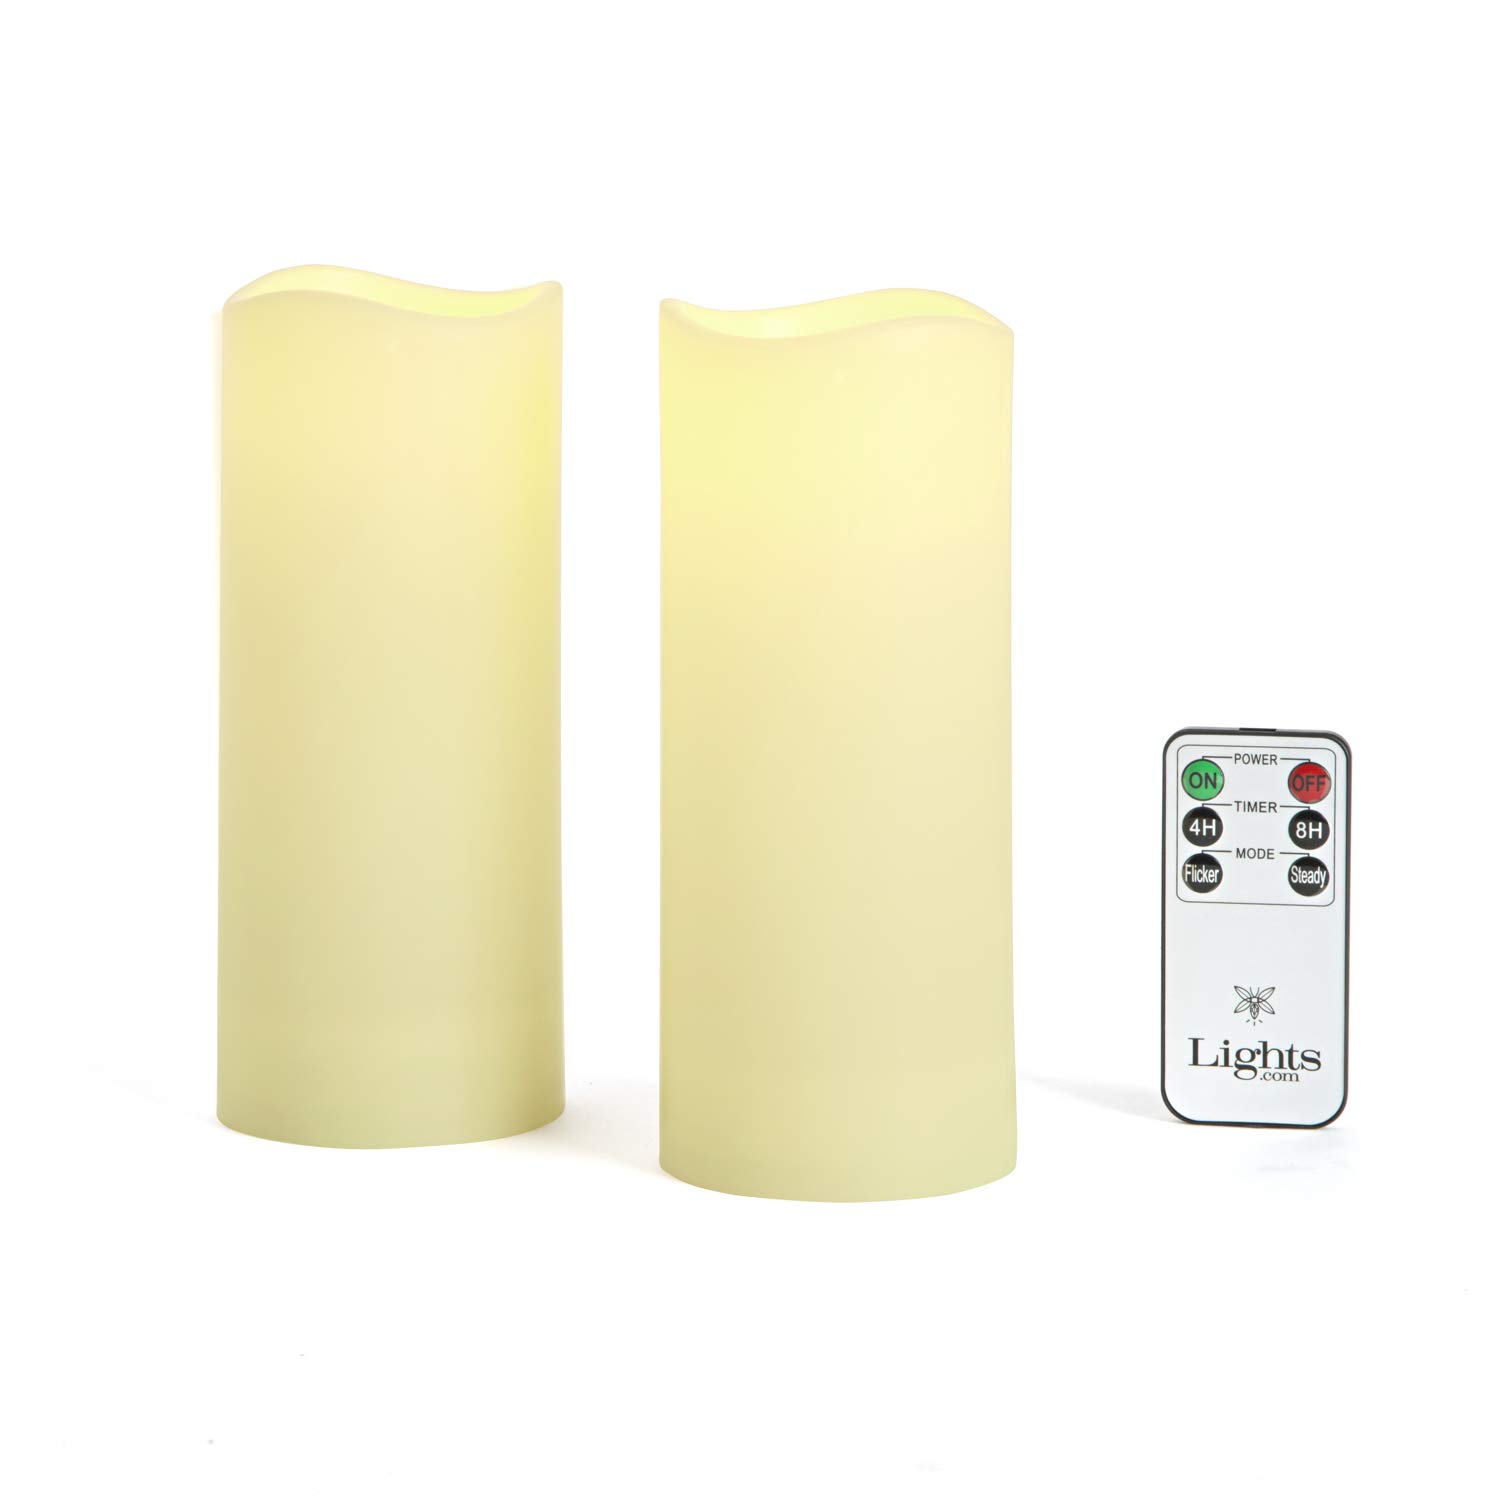 Outdoor Flameless Candles, Set of 2 - Large 3'' x 7'' Decorative Pillar Candles,Warm White LED Glow, Water Resistant, Batteries Included